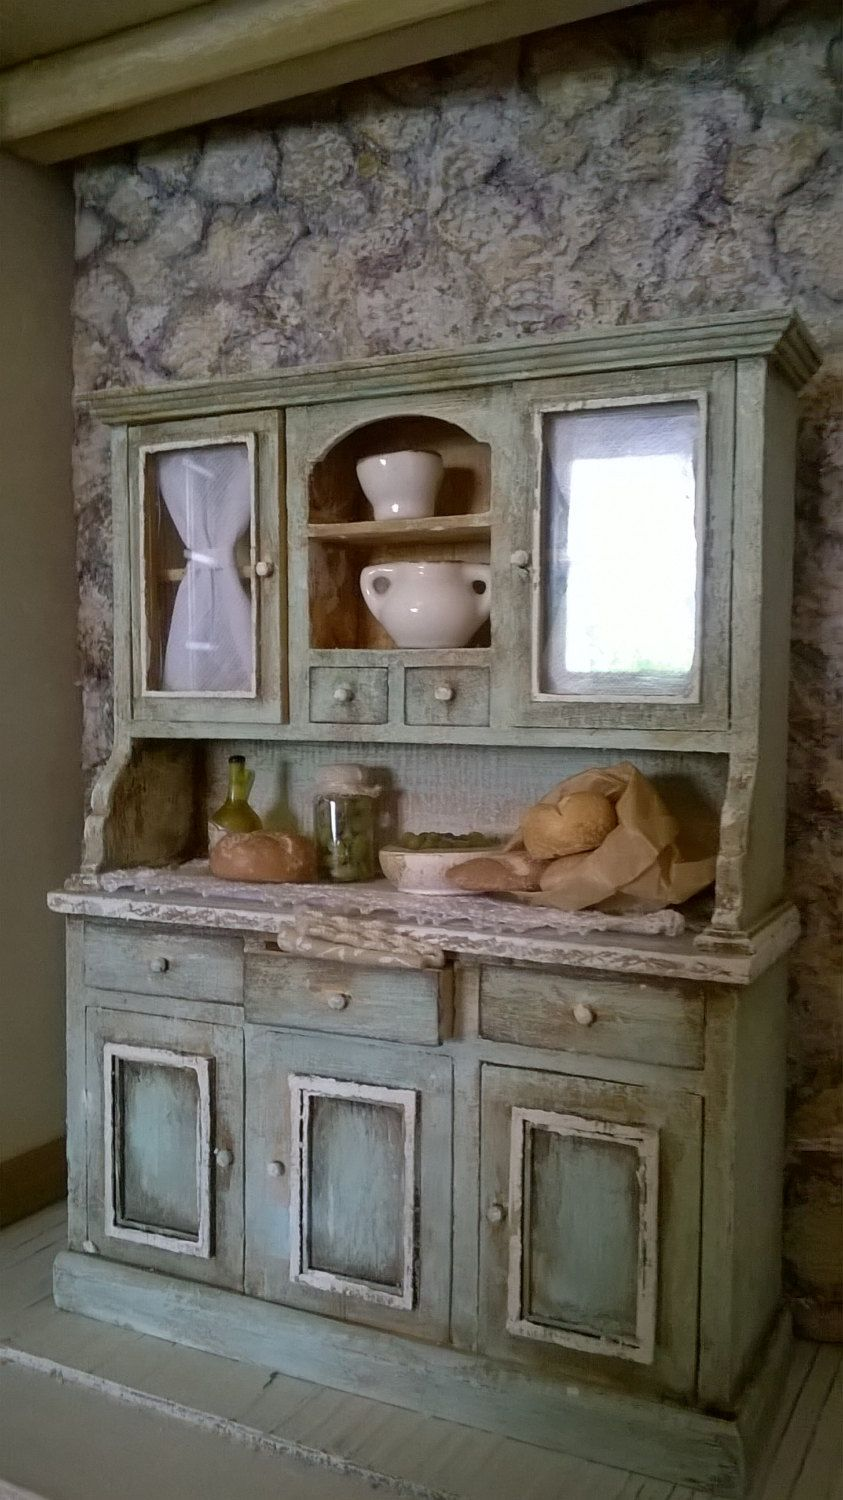 Kitchen cabinets for dollhouse - Miniature Dollhouse Kitchen Shelf Miniature Kitchen Cabinet By Lecreazionidinadia On Etsy